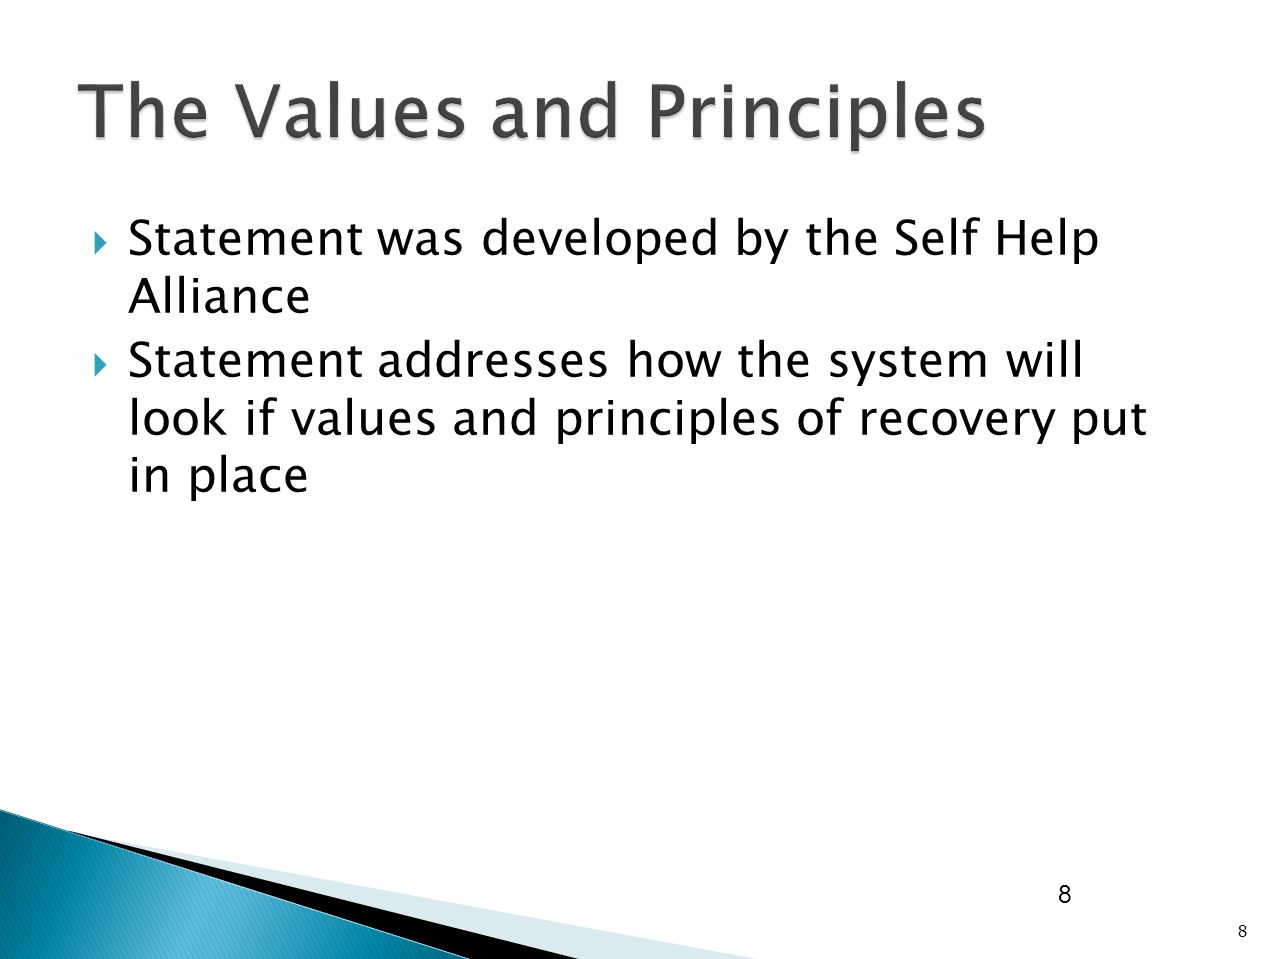  Statement was developed by the Self Help Alliance  Statement addresses how the system will look if values and principles of recovery put in place 8 8